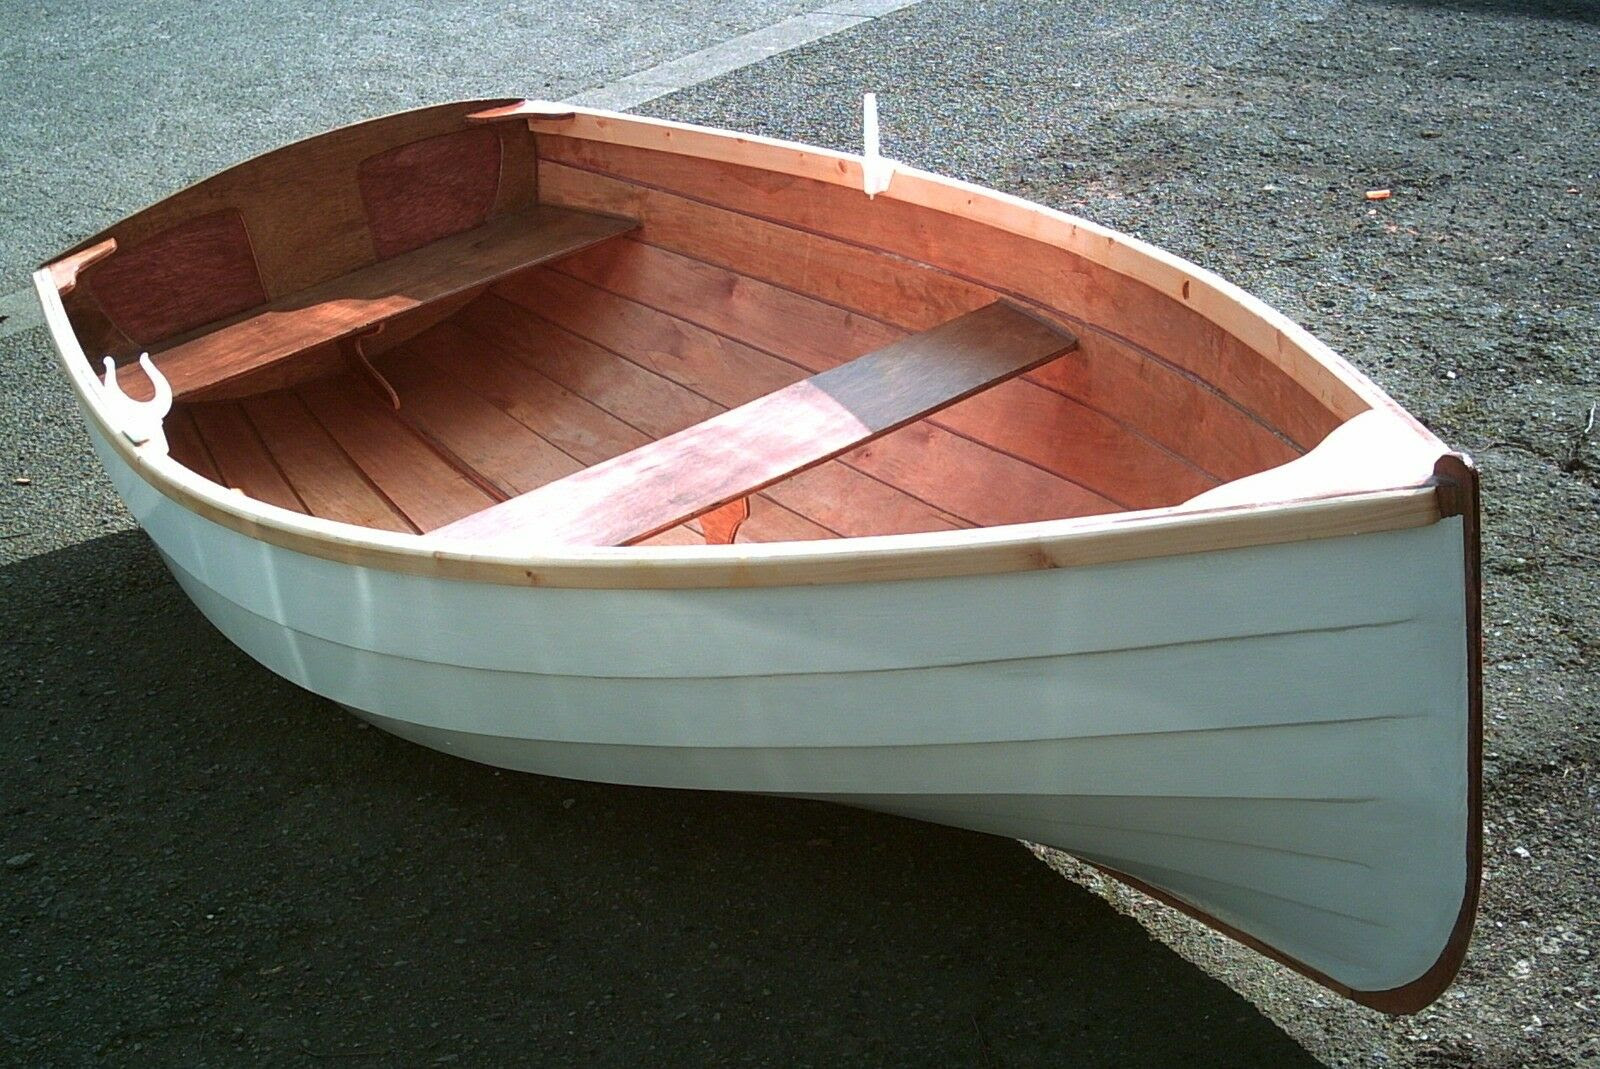 Boat Building Plans for ROMNEY 2.2 Plywood Sailing Dinghy by STANLEY